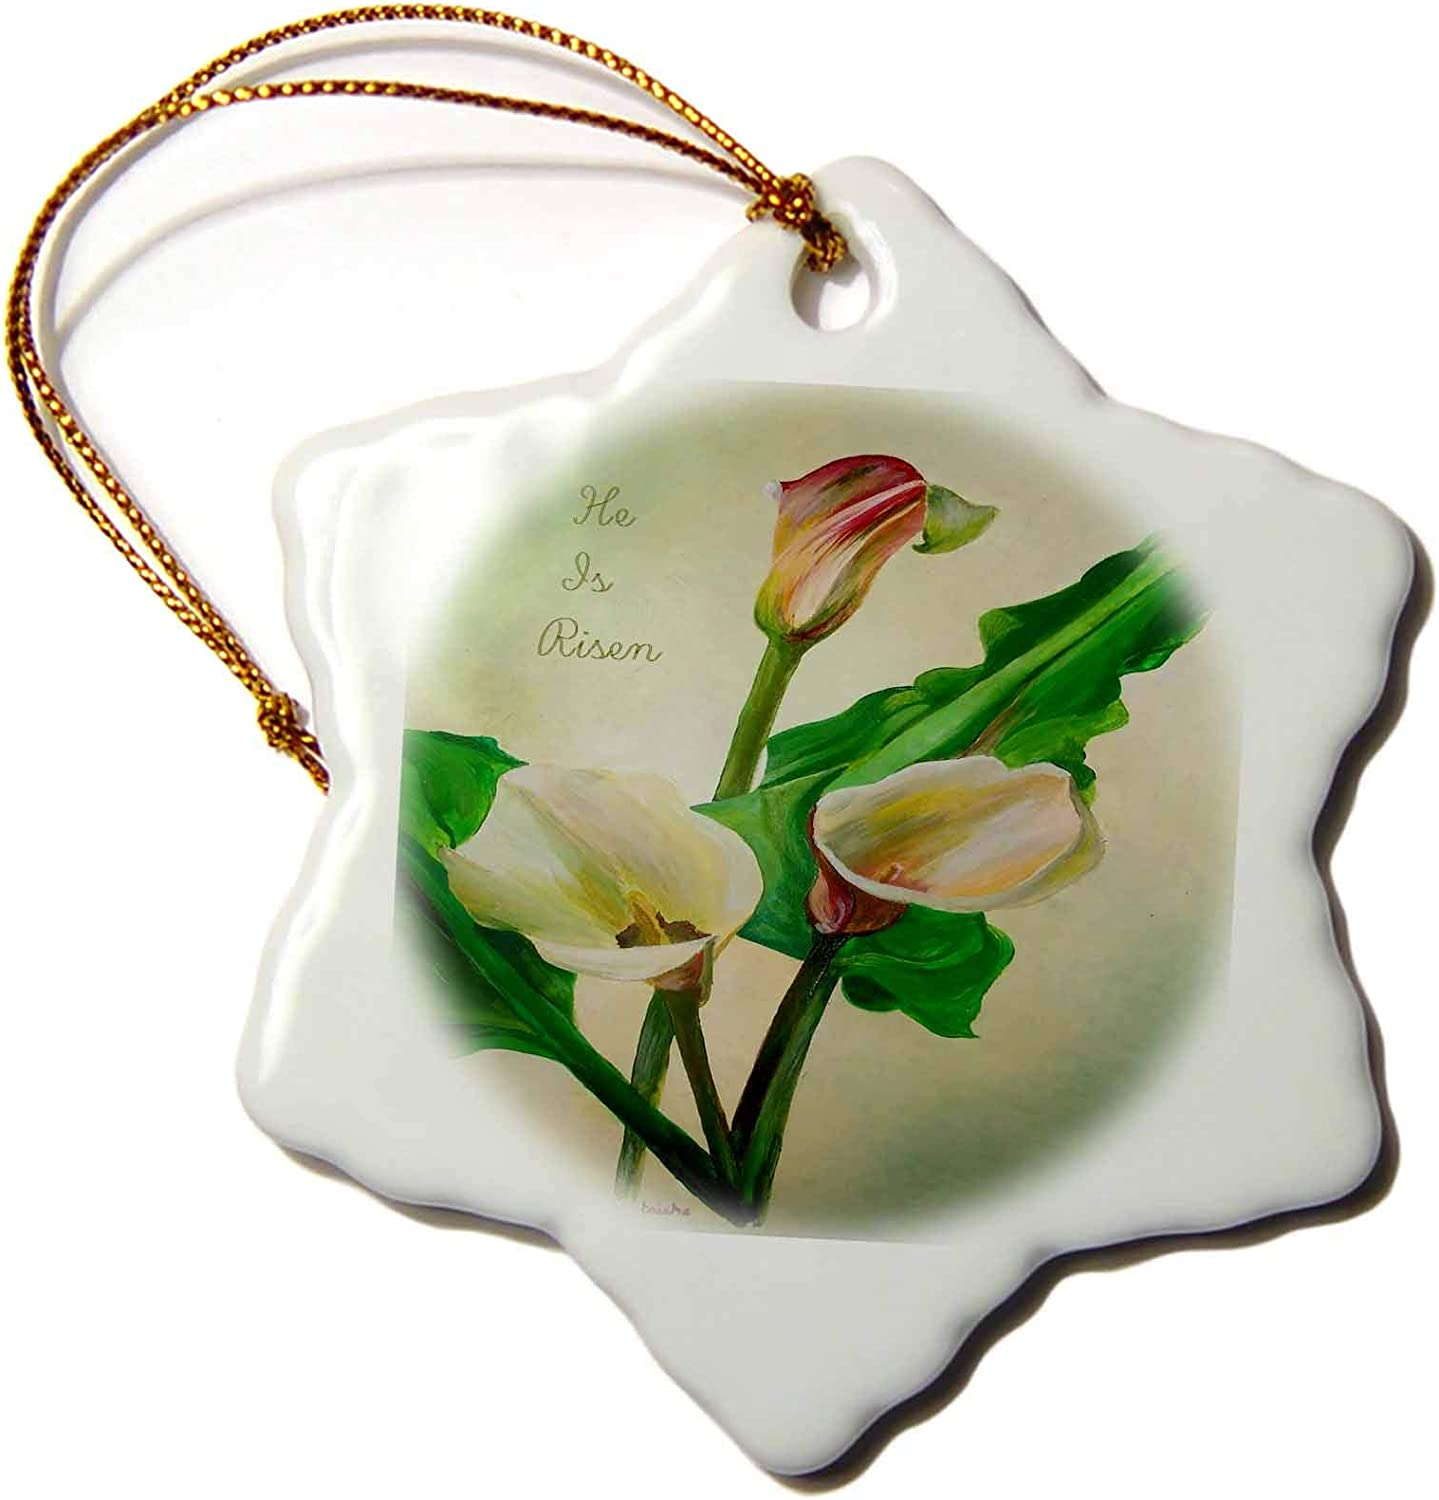 3dRose Artistic Subdued and Soft Calla Lilies Easter Greeting He ?s Risen - Ornaments (ORN_333858_1)